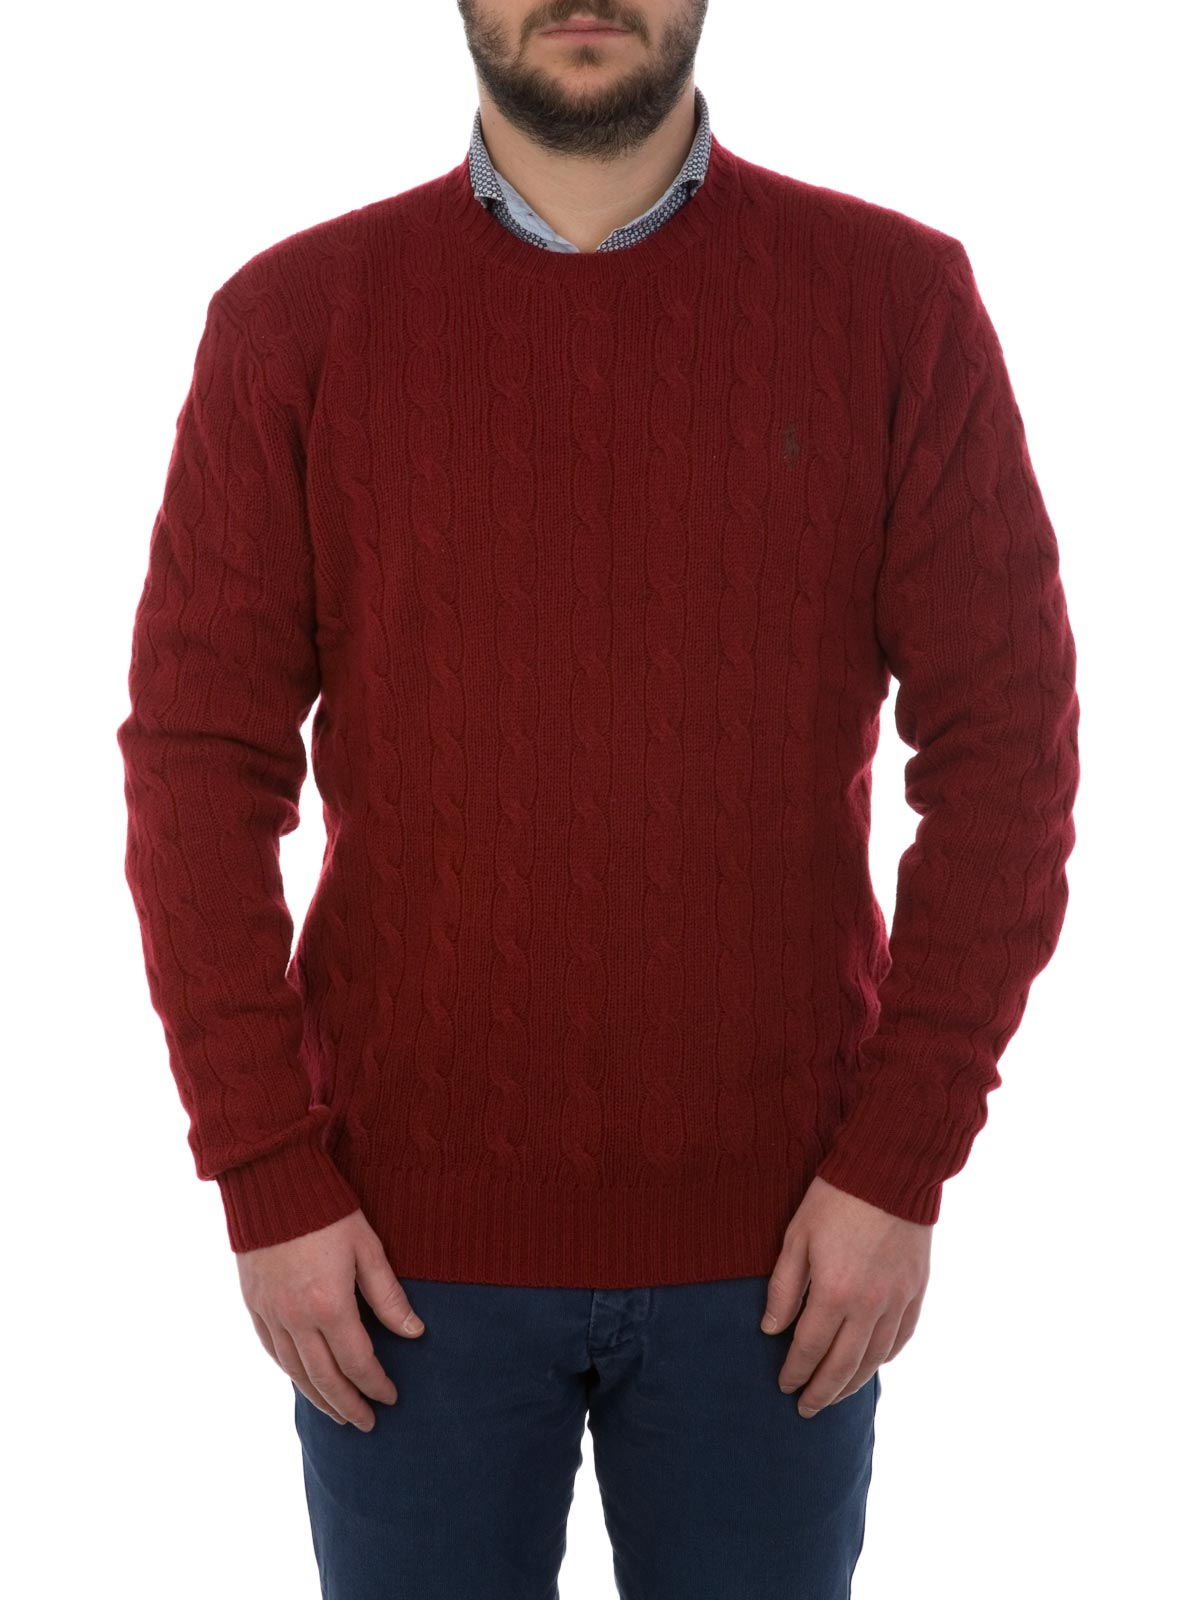 c1b8aaae8 POLO RALPH LAUREN Cable-Knit Cashmere Sweater Holiday Red ...